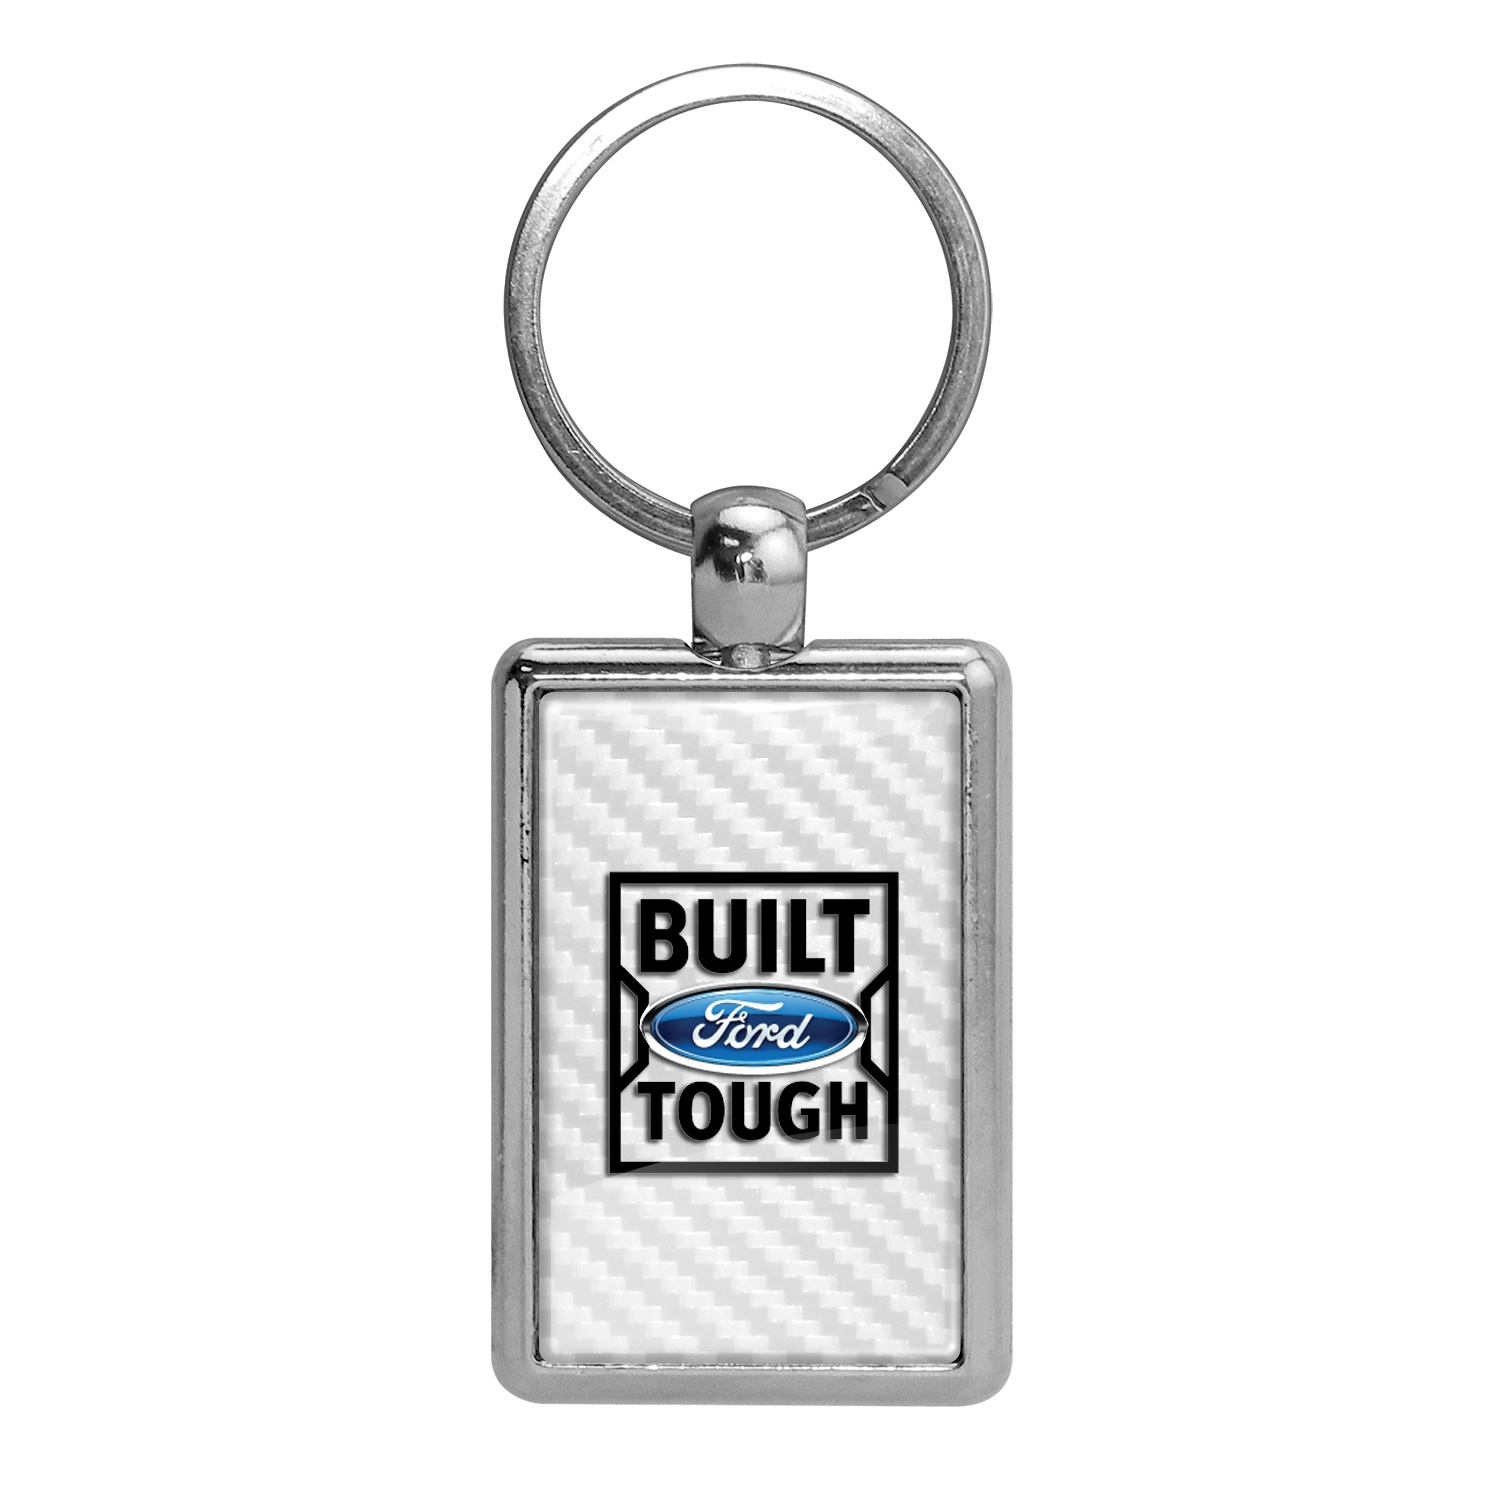 Ford Built Ford Tough White Carbon Fiber Backing Brush Rectangle Metal Key Chain